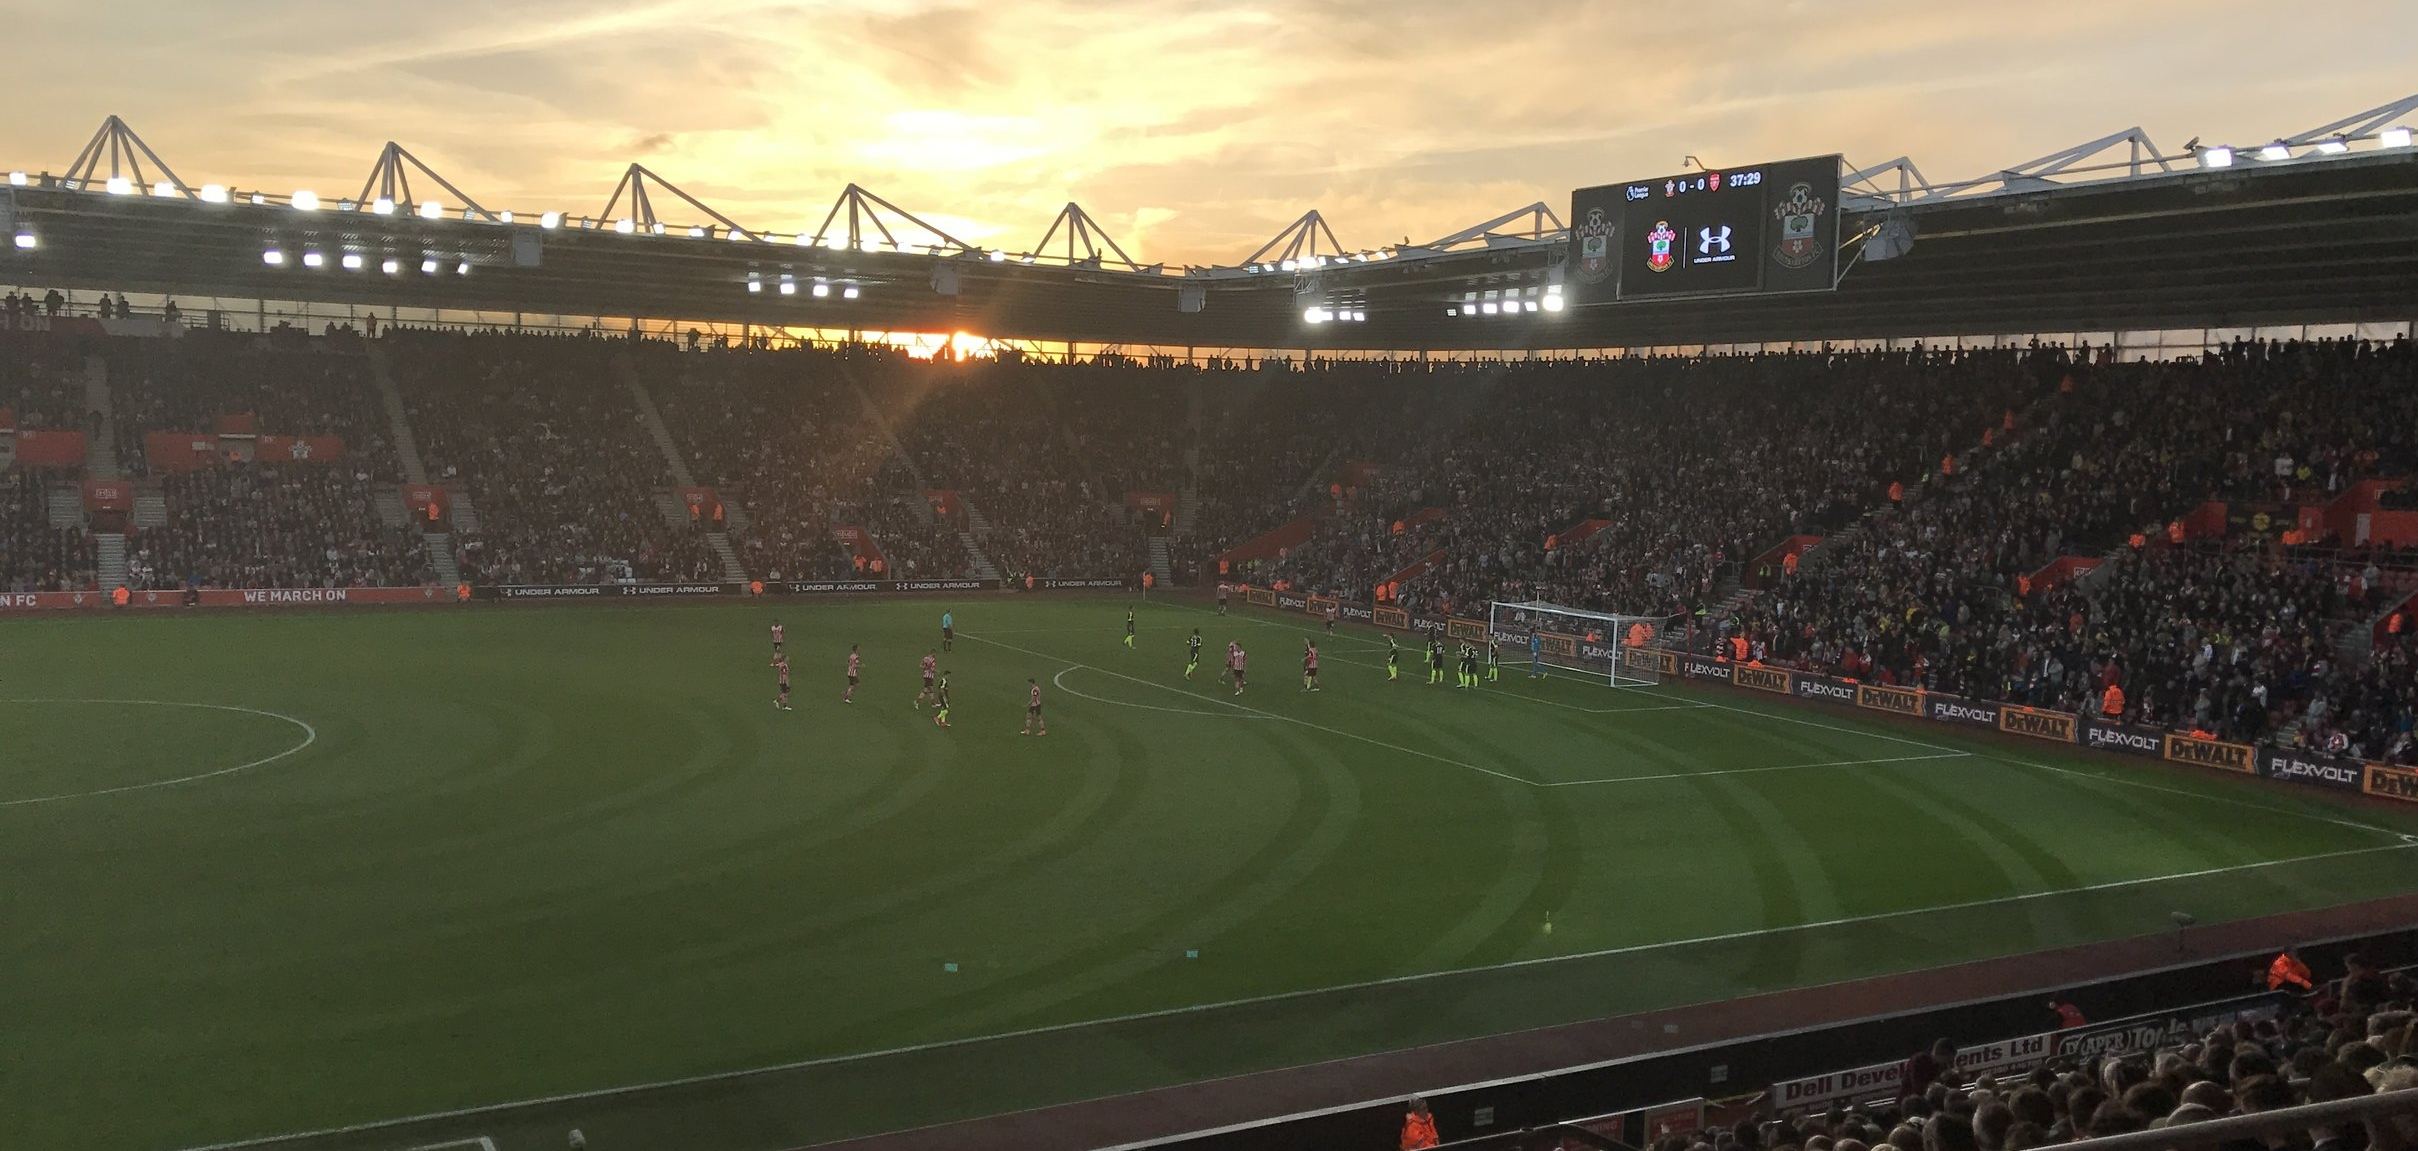 A beautiful evening to watch the sunset at St.Marys as Southampton play hosts to Arsenal, who are set up zonally to defend a Saints corner.